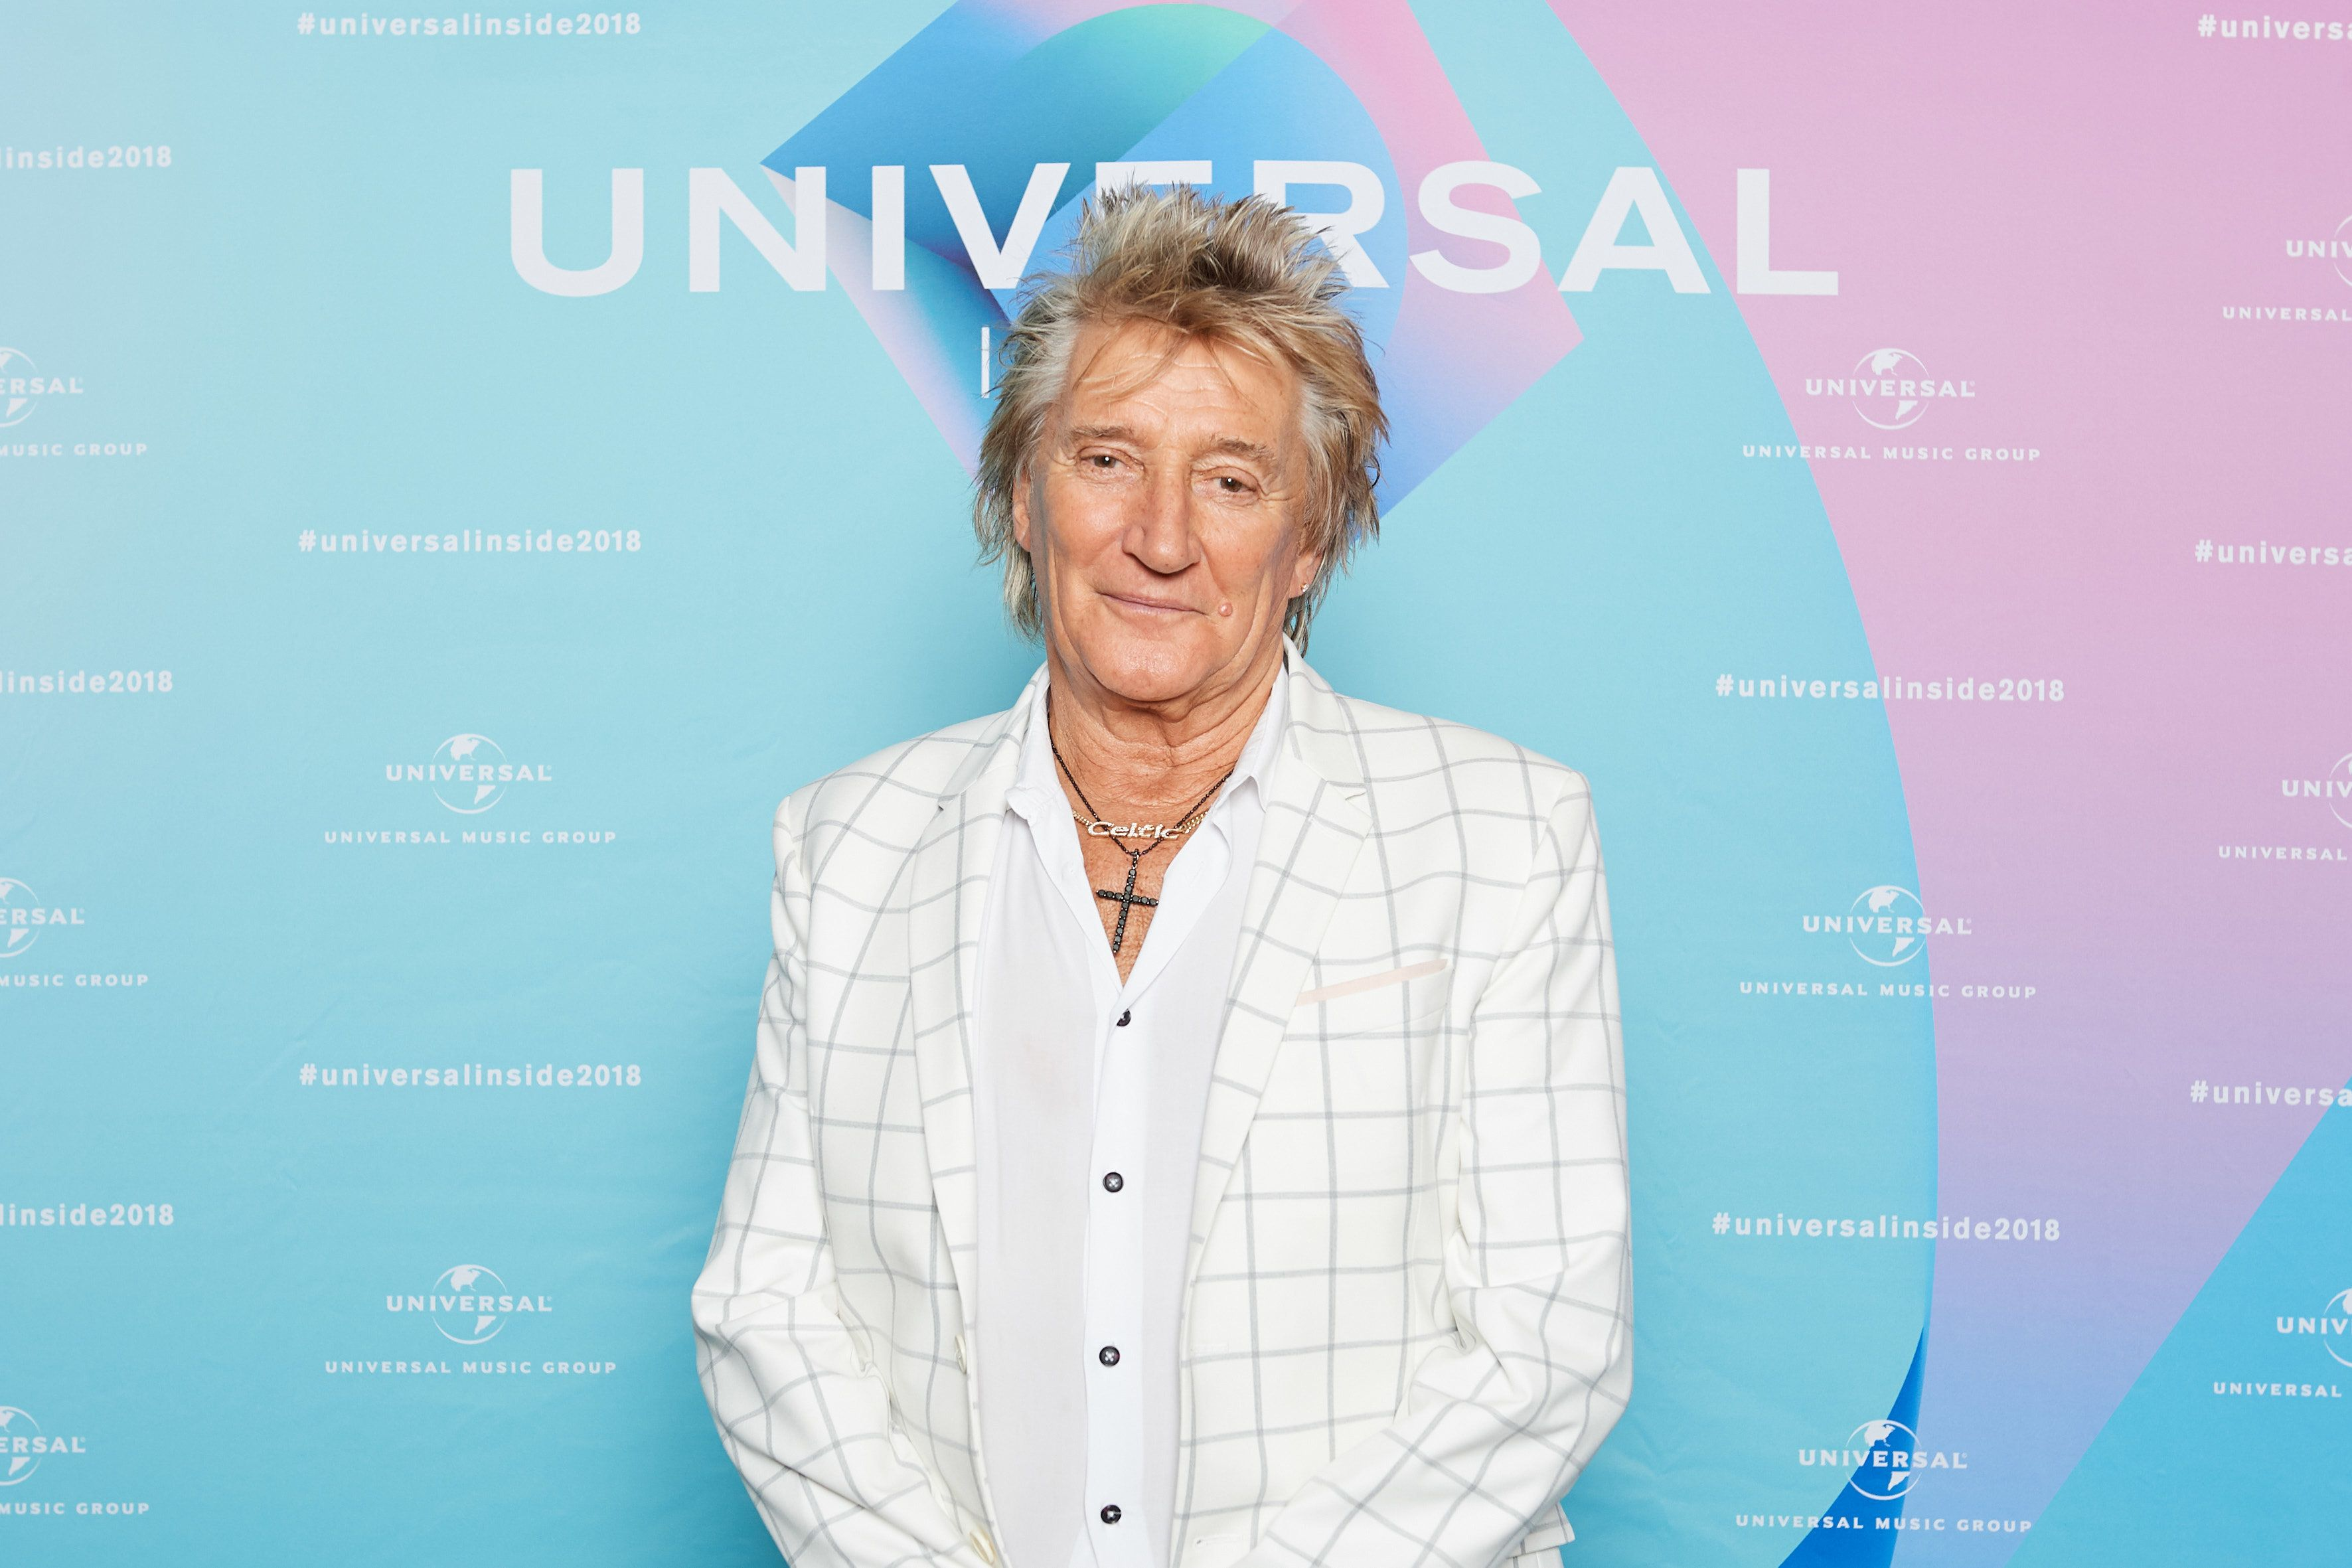 Rod Stewart Claims BBC Wouldn't Let Him Perform 'The Killing Of Georgie' On Chris Evans'